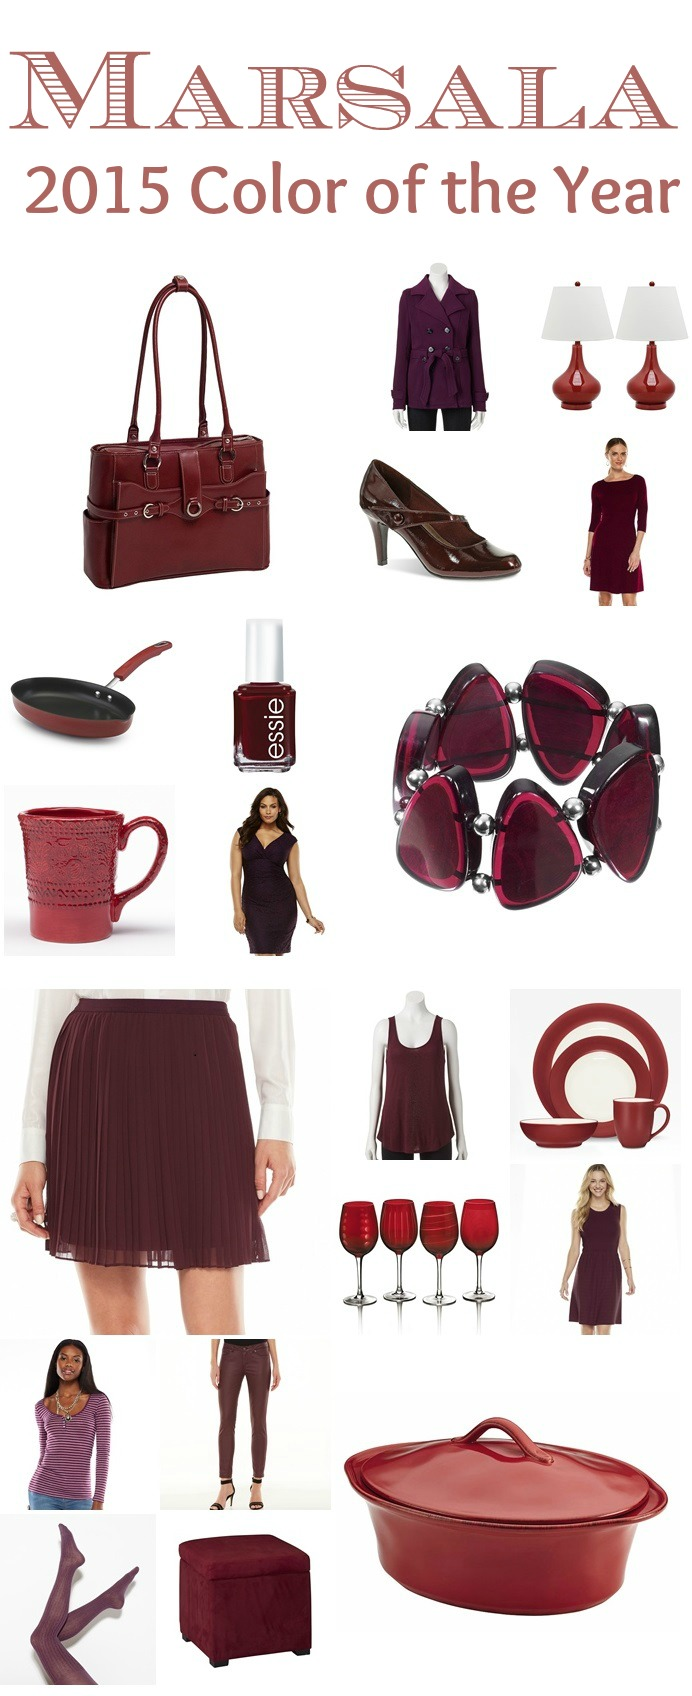 2015 PANTONE COLOR OF THE YEAR MARSALA Kohls #Yes2You #findyouryes